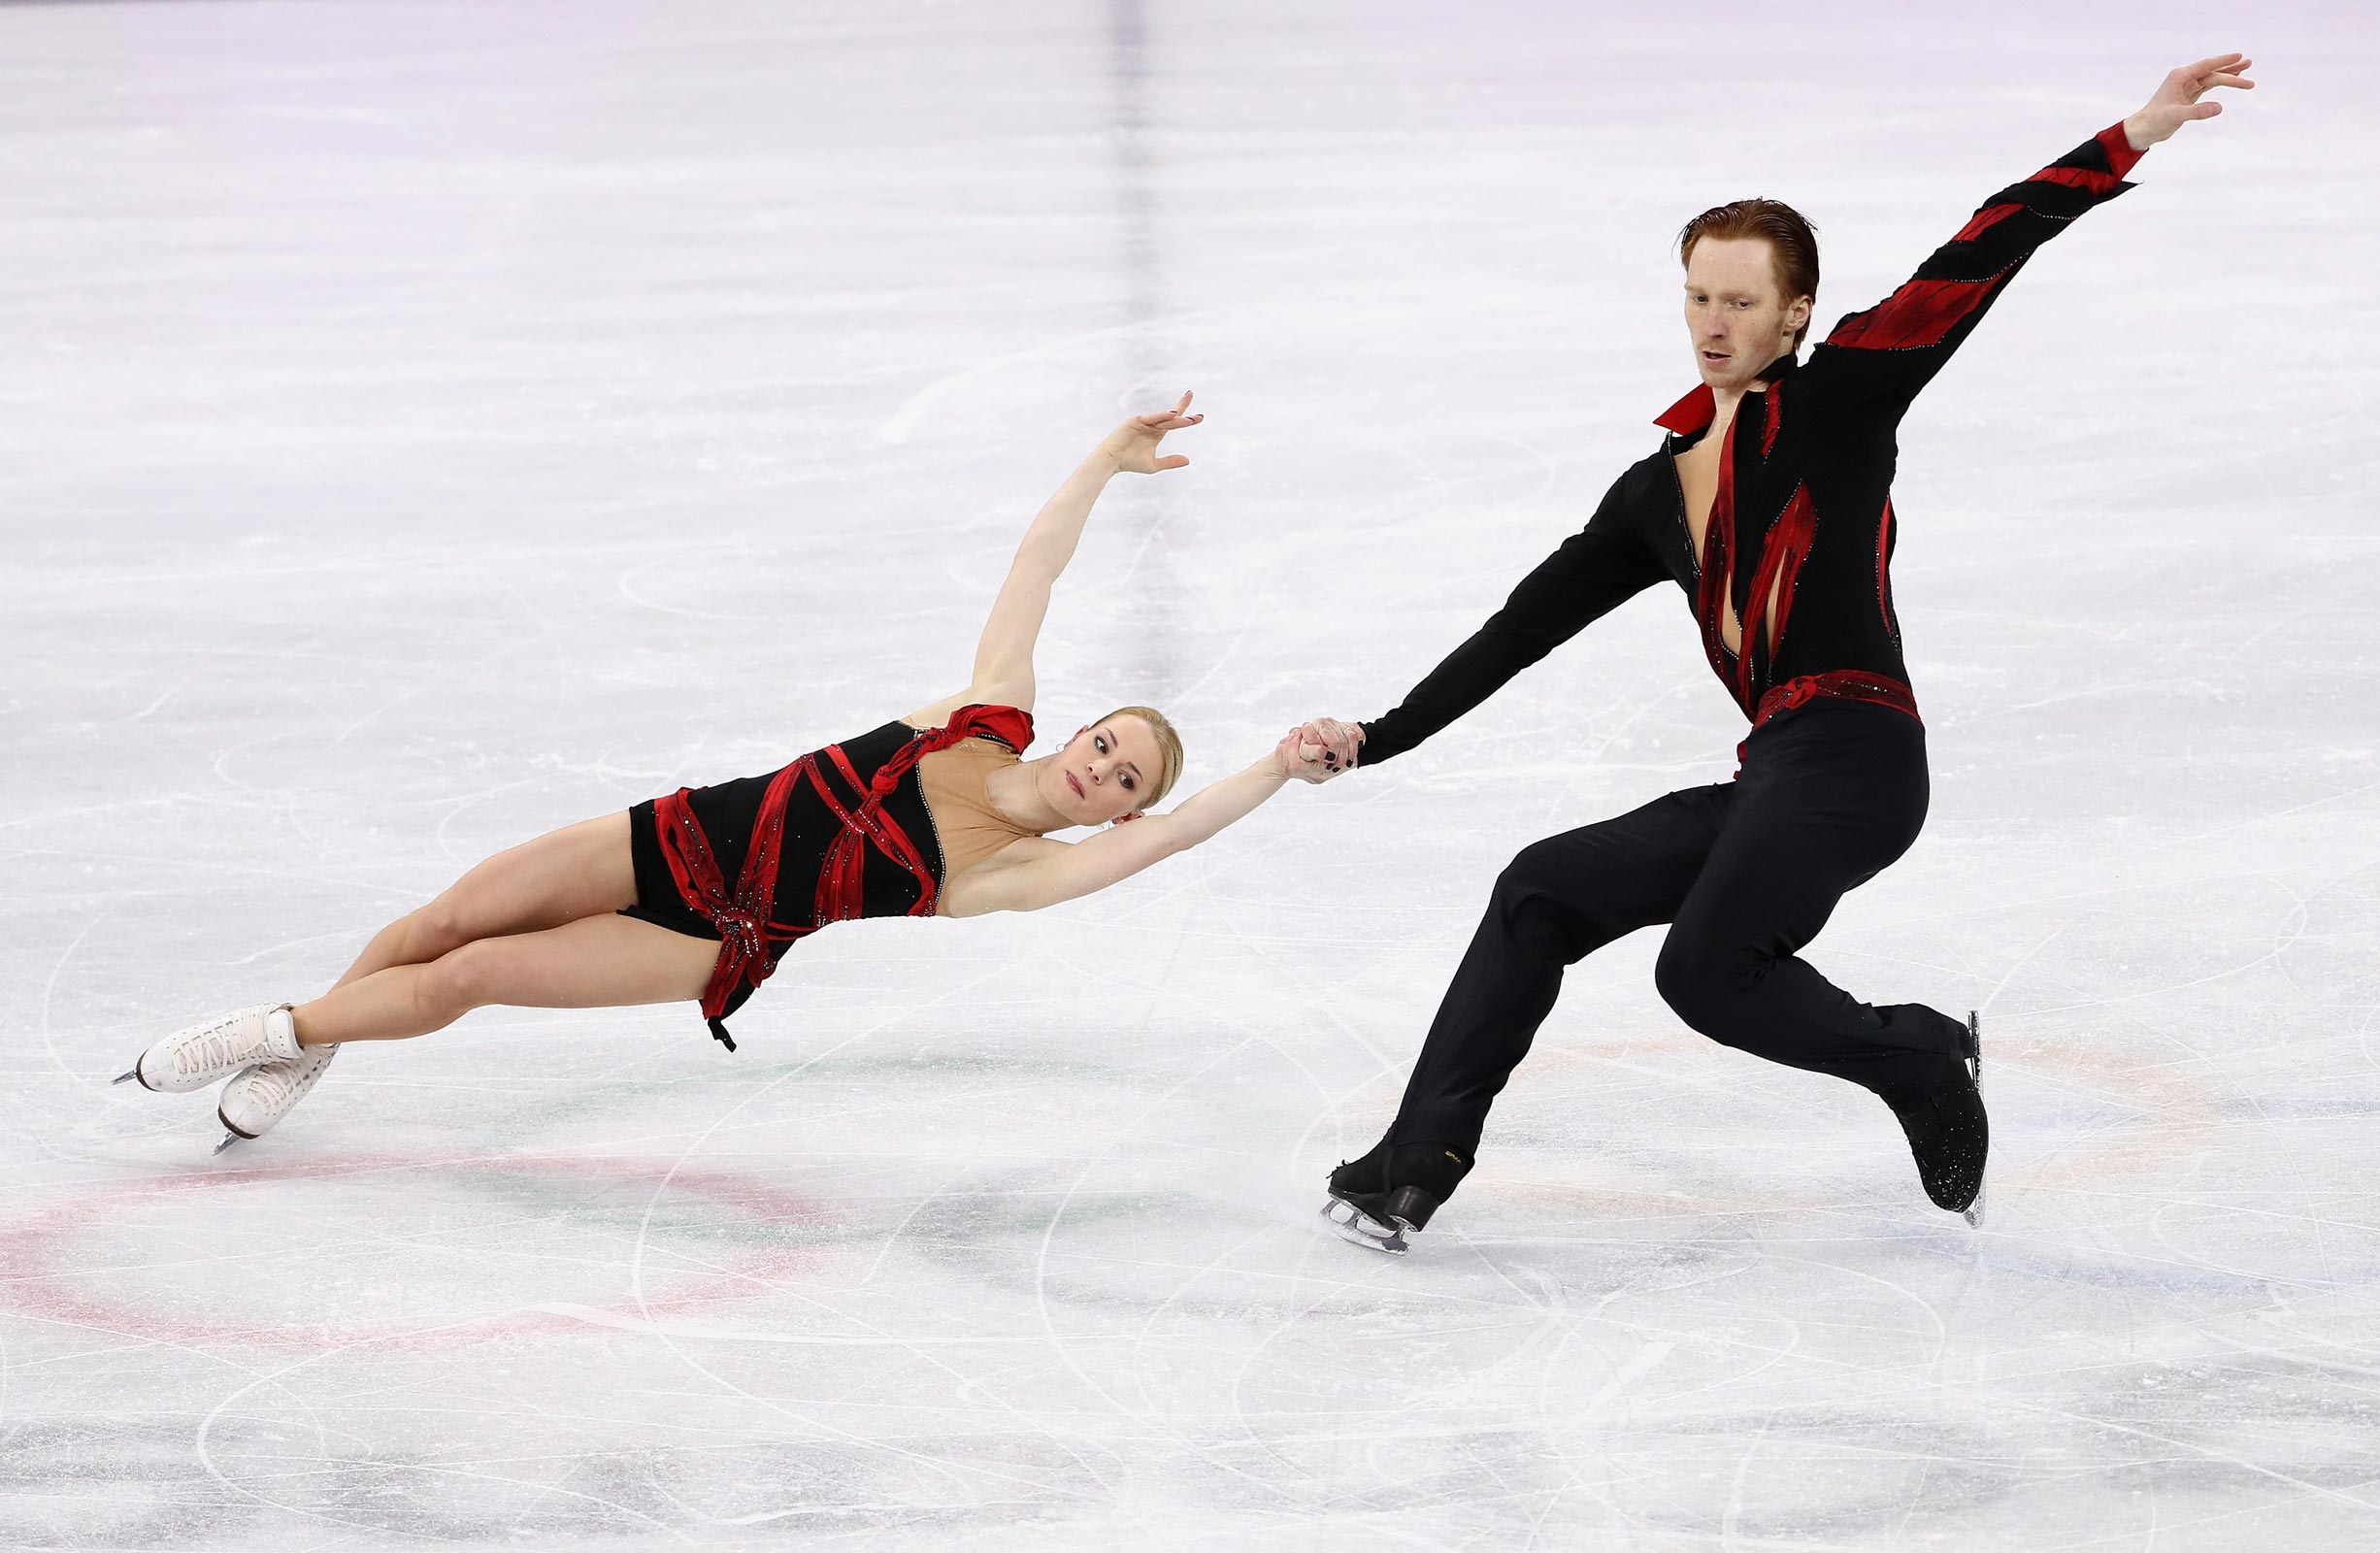 Figure Skating - Pair Skating Short Program